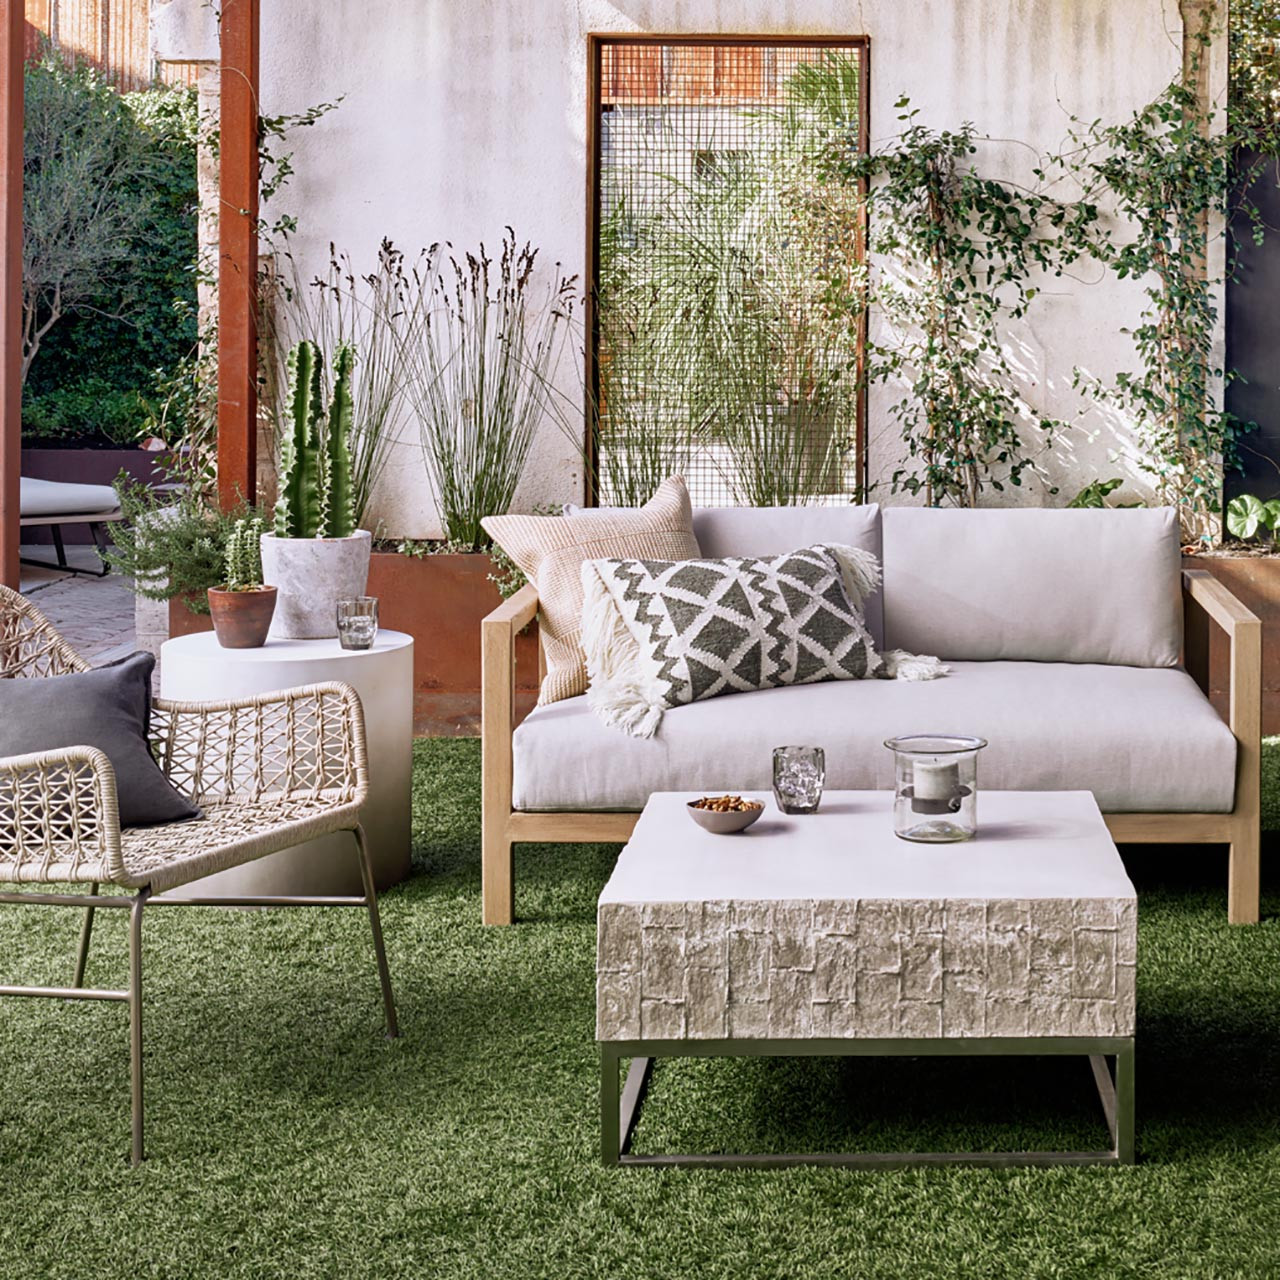 Roman Concrete and Chrome Outdoor Coffee Table